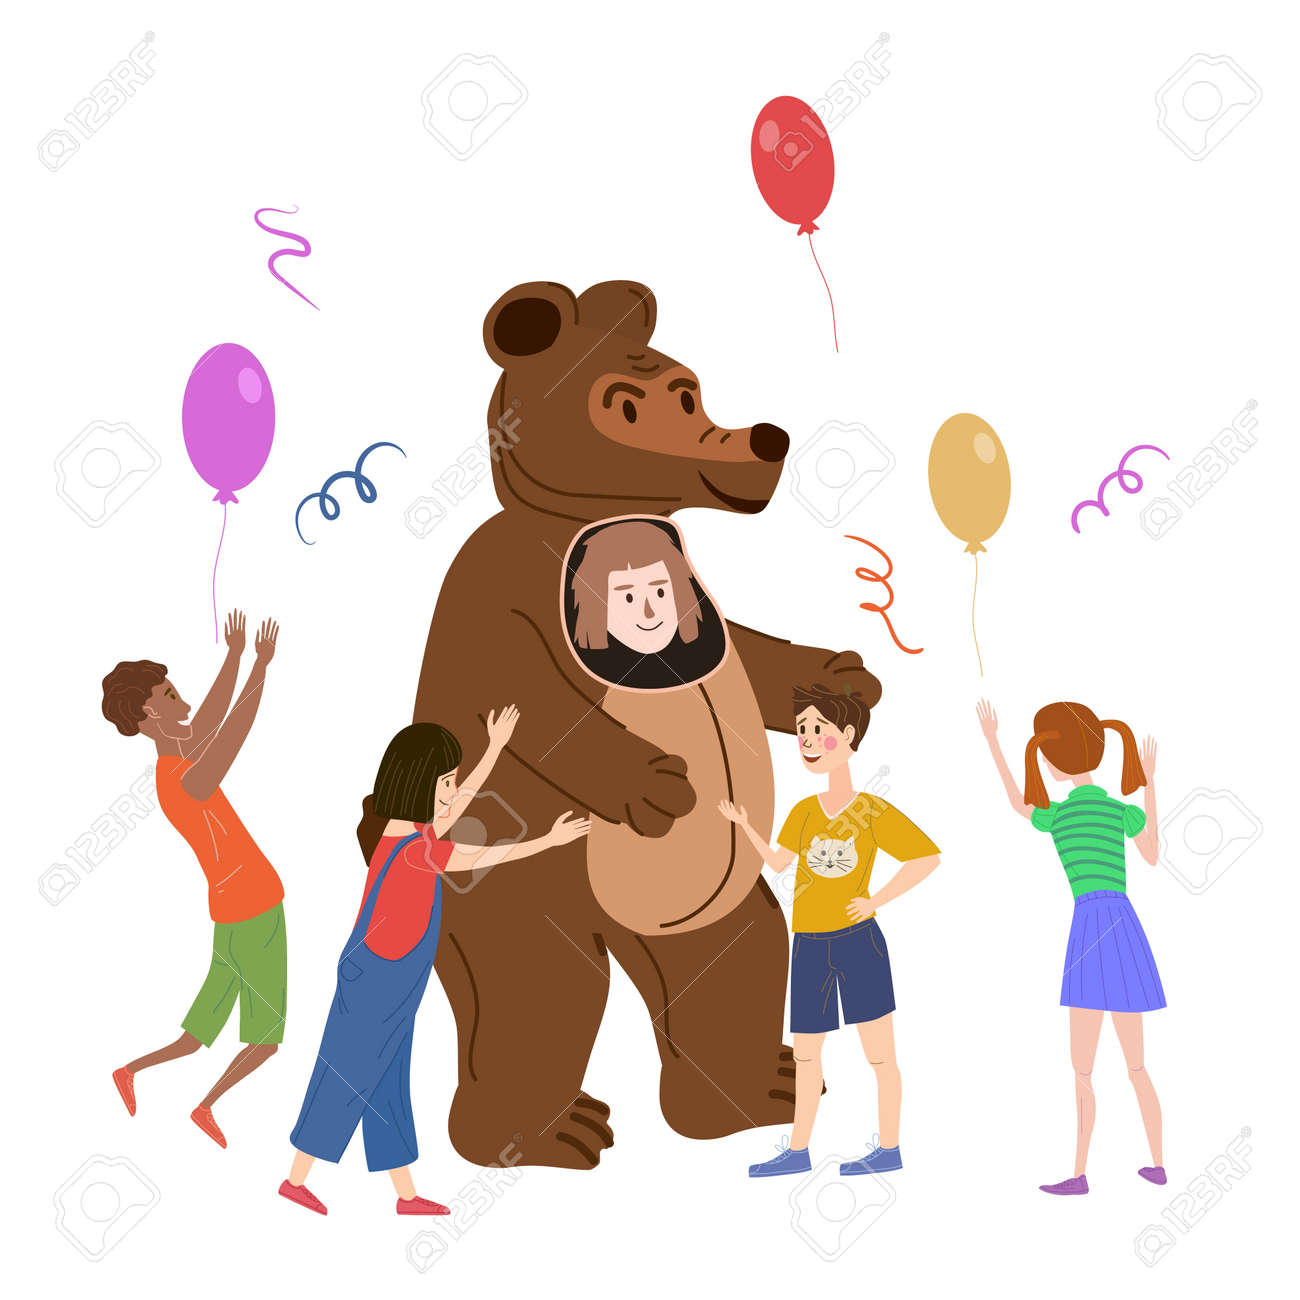 Holiday party actor entertainer wearing in costume Bear, play with kids. Performance Birhday Carnaval Party, group children with adult animator. Vector cartoon flat style illustration isolated - 161998867